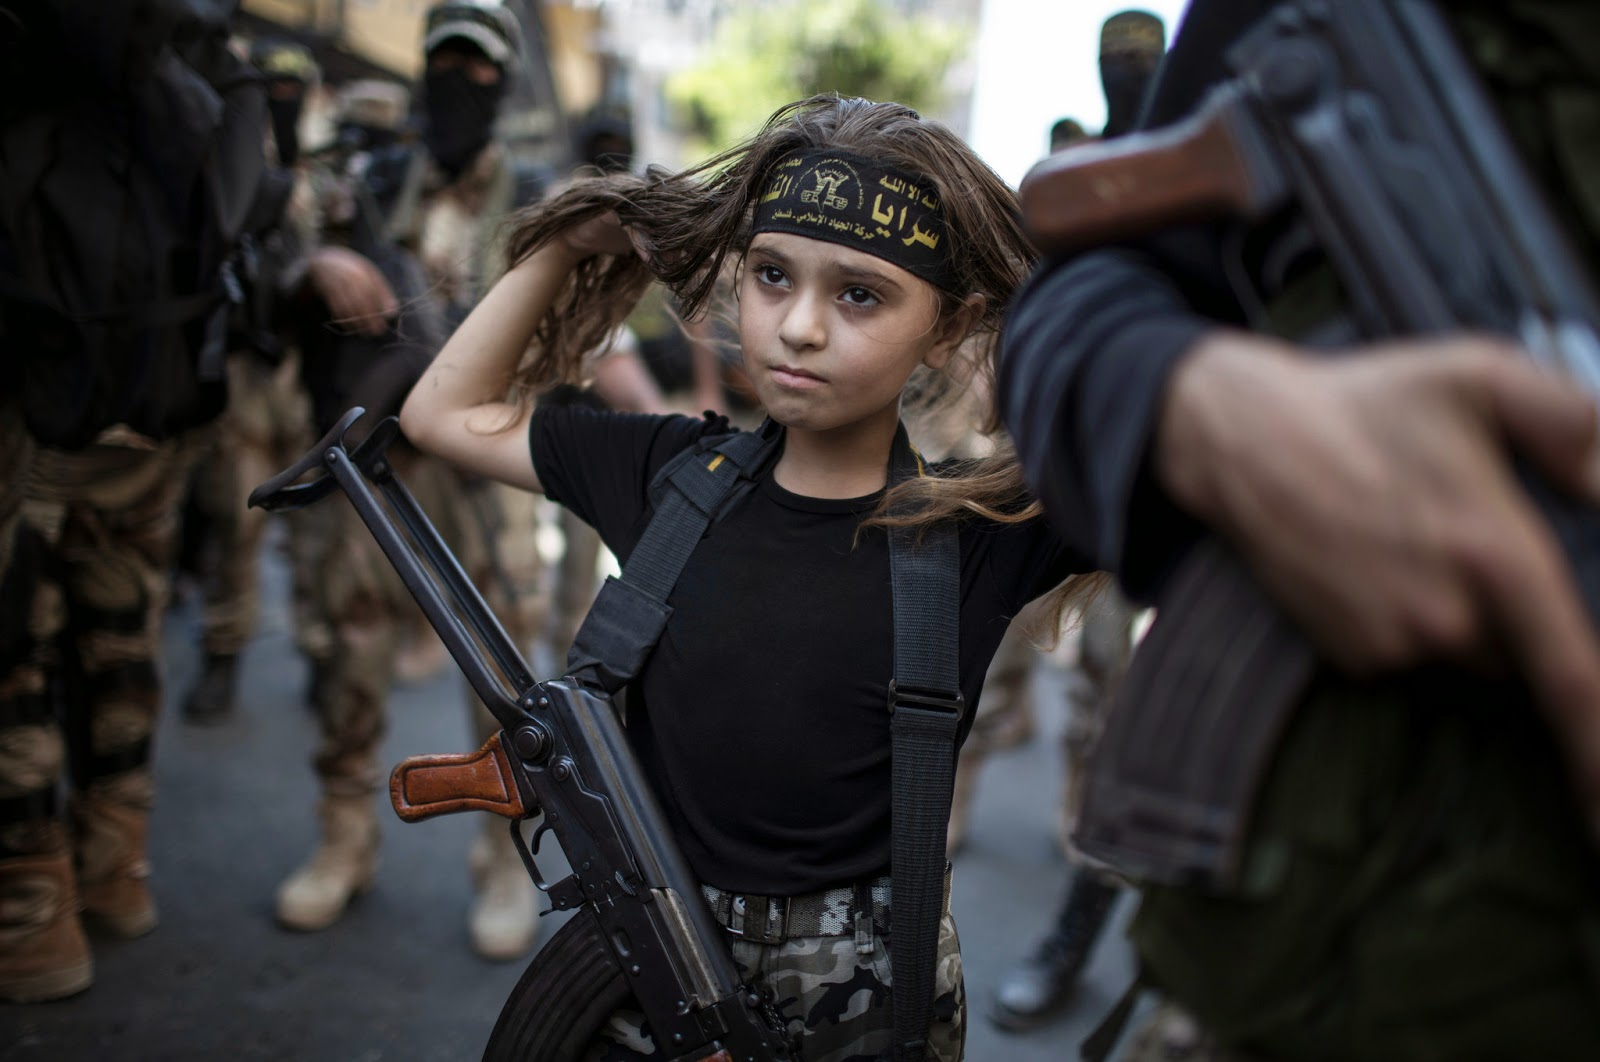 A PALESTINIAN GIRL WITH A KALASHNIKOV RIFLE, AMID MILITANTS IN GAZA CITY - 29 Breathtaking Photographs of The Human Race